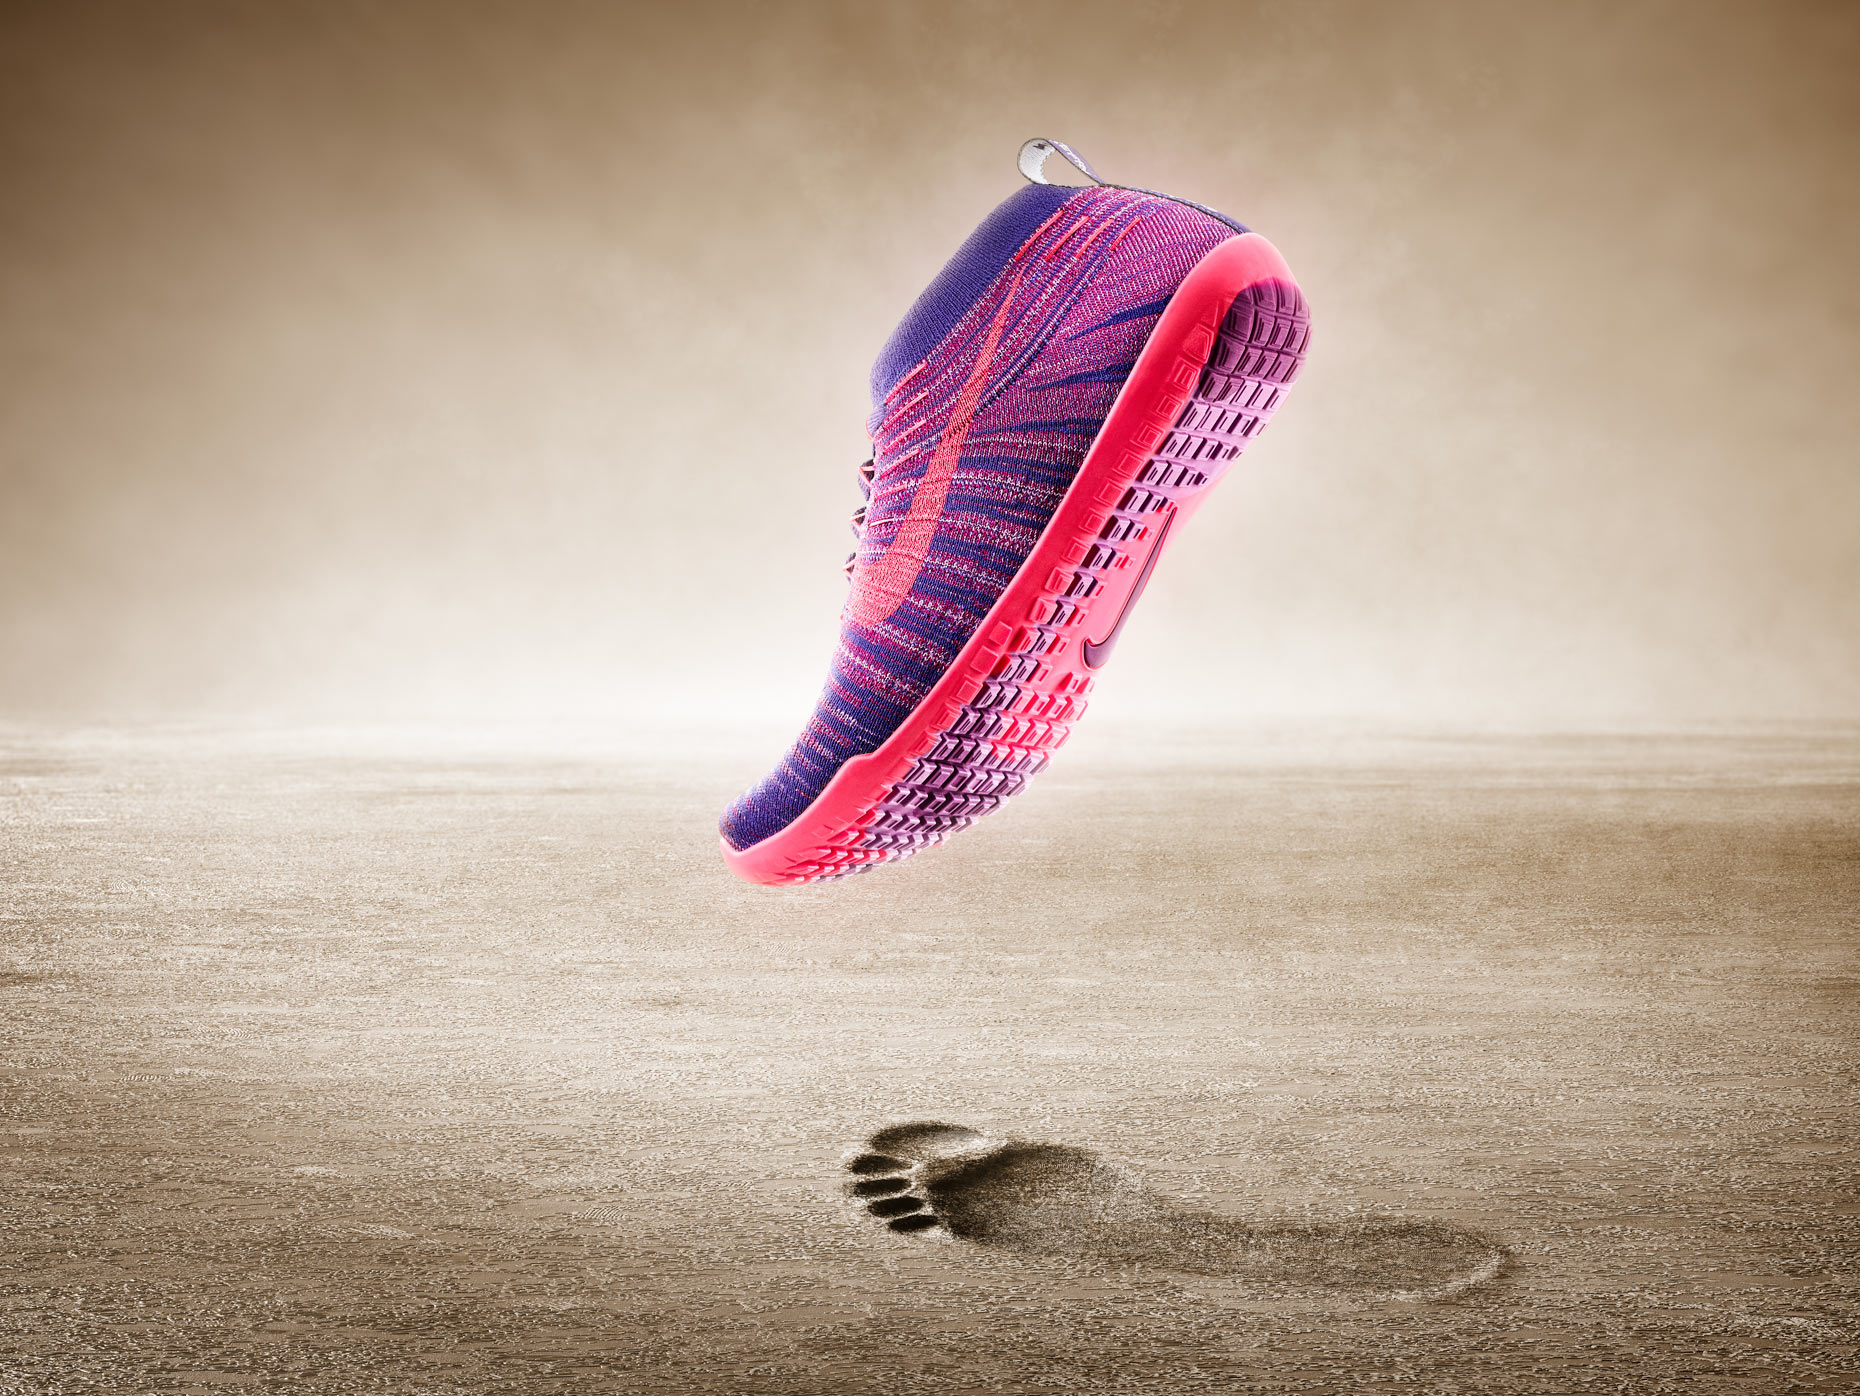 Nike Hyperfeel Image Composite, Effects and Retouching